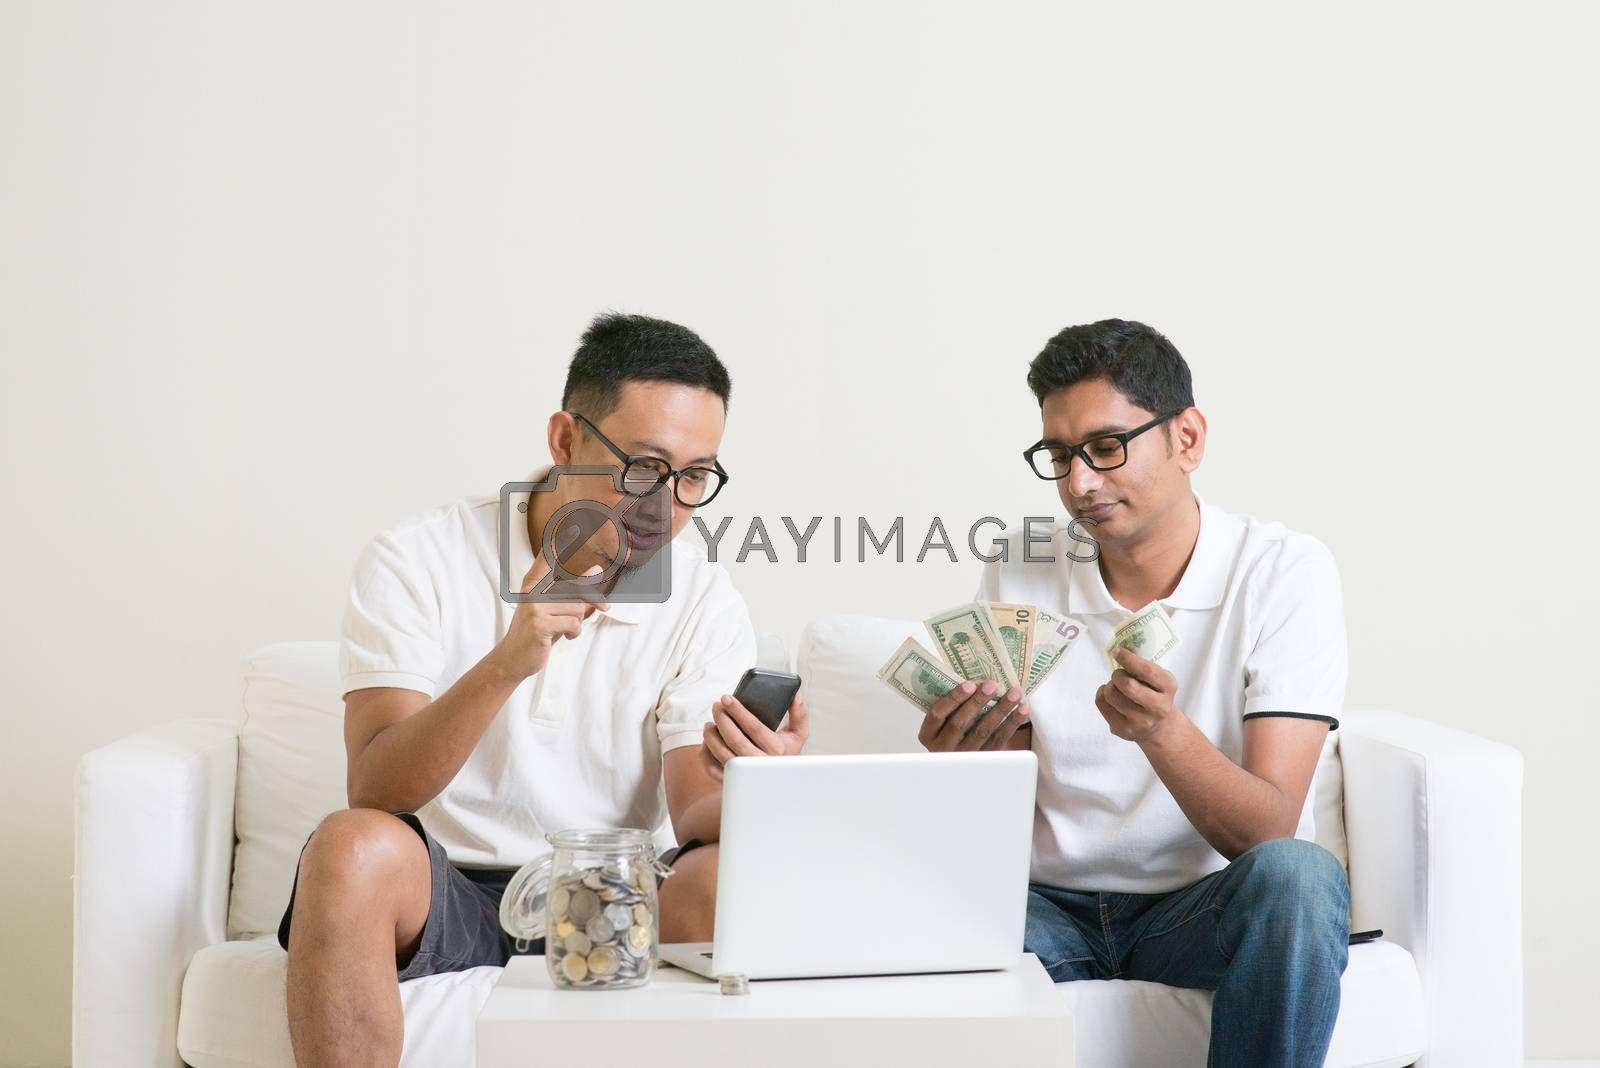 Asian men working from home. Young guys counting cash with partner, earning money from their successful online business.